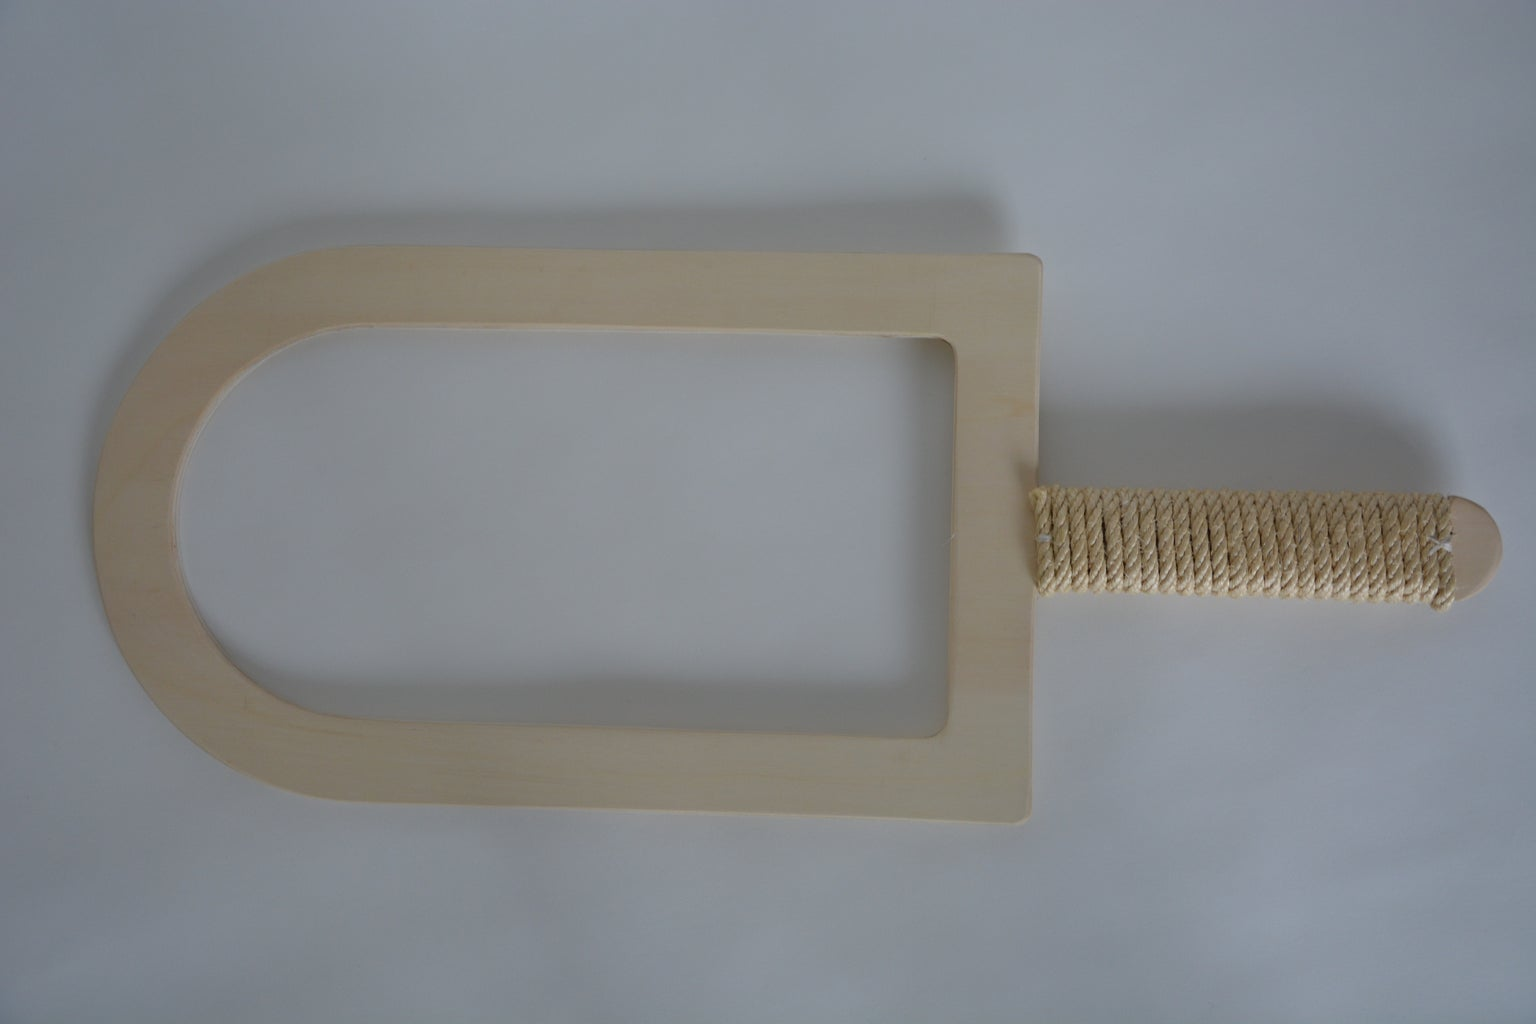 Step 1: Making the Wooden Frame